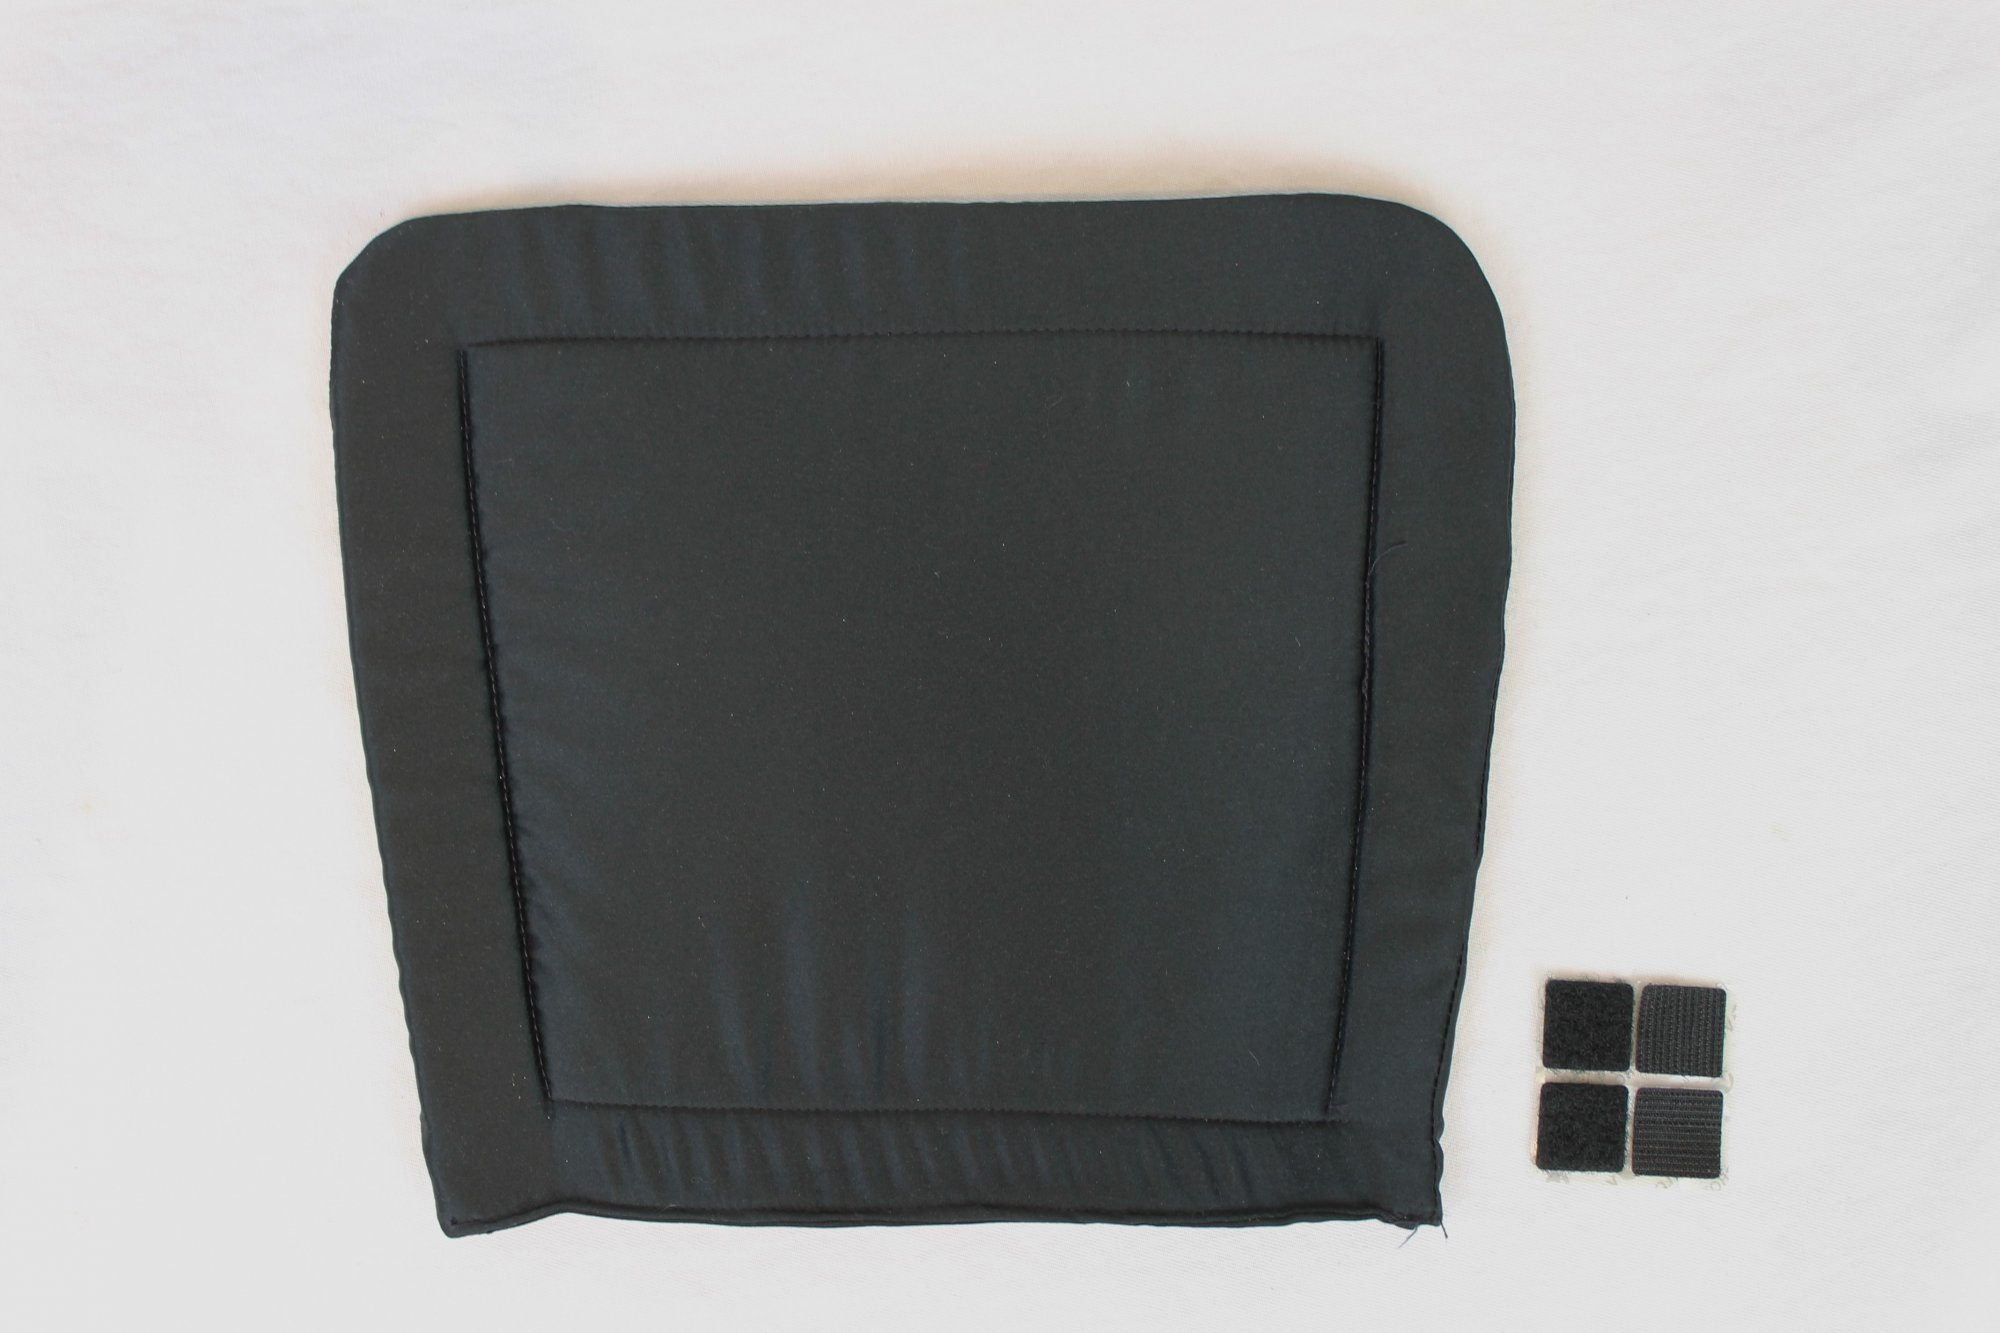 NEW Black Accordion Back Pad Width (32cm/11.75in) Length (25cm/9.75in)